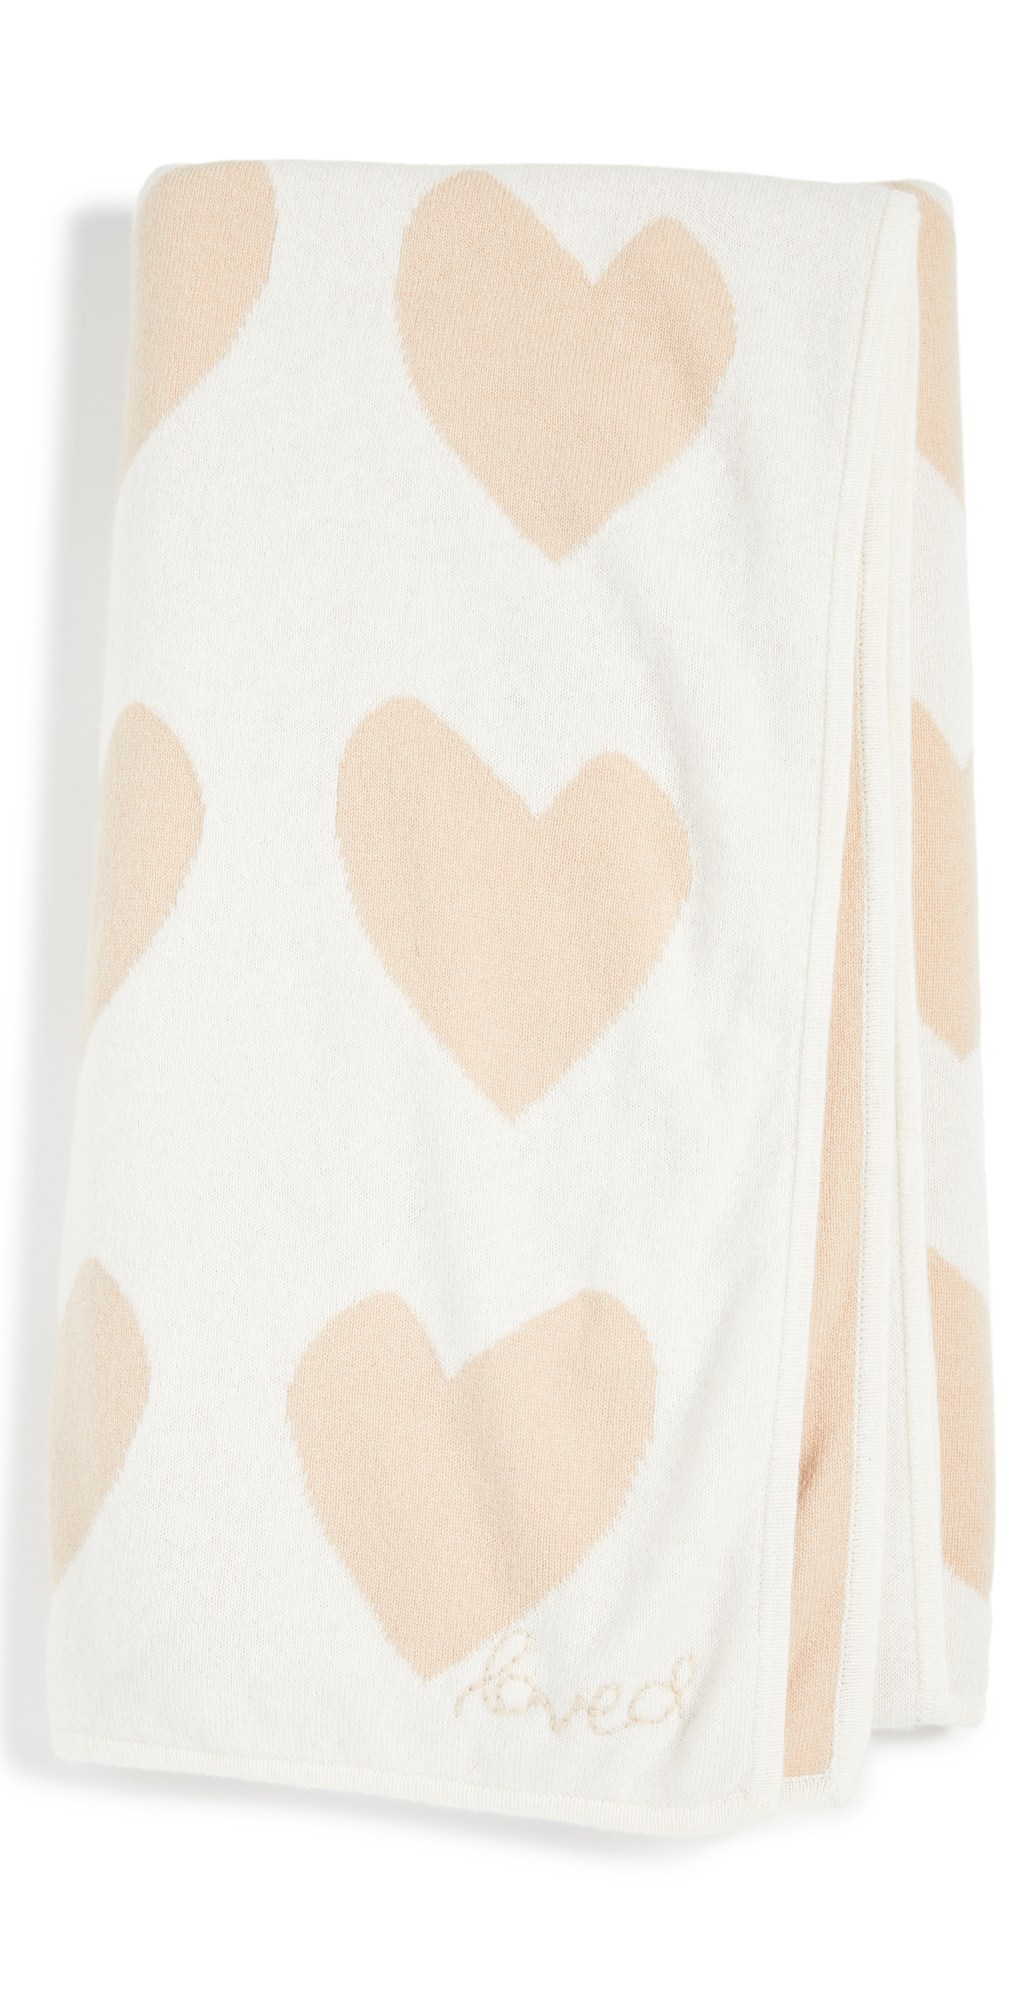 Imperfect Love Cashmere Blanket